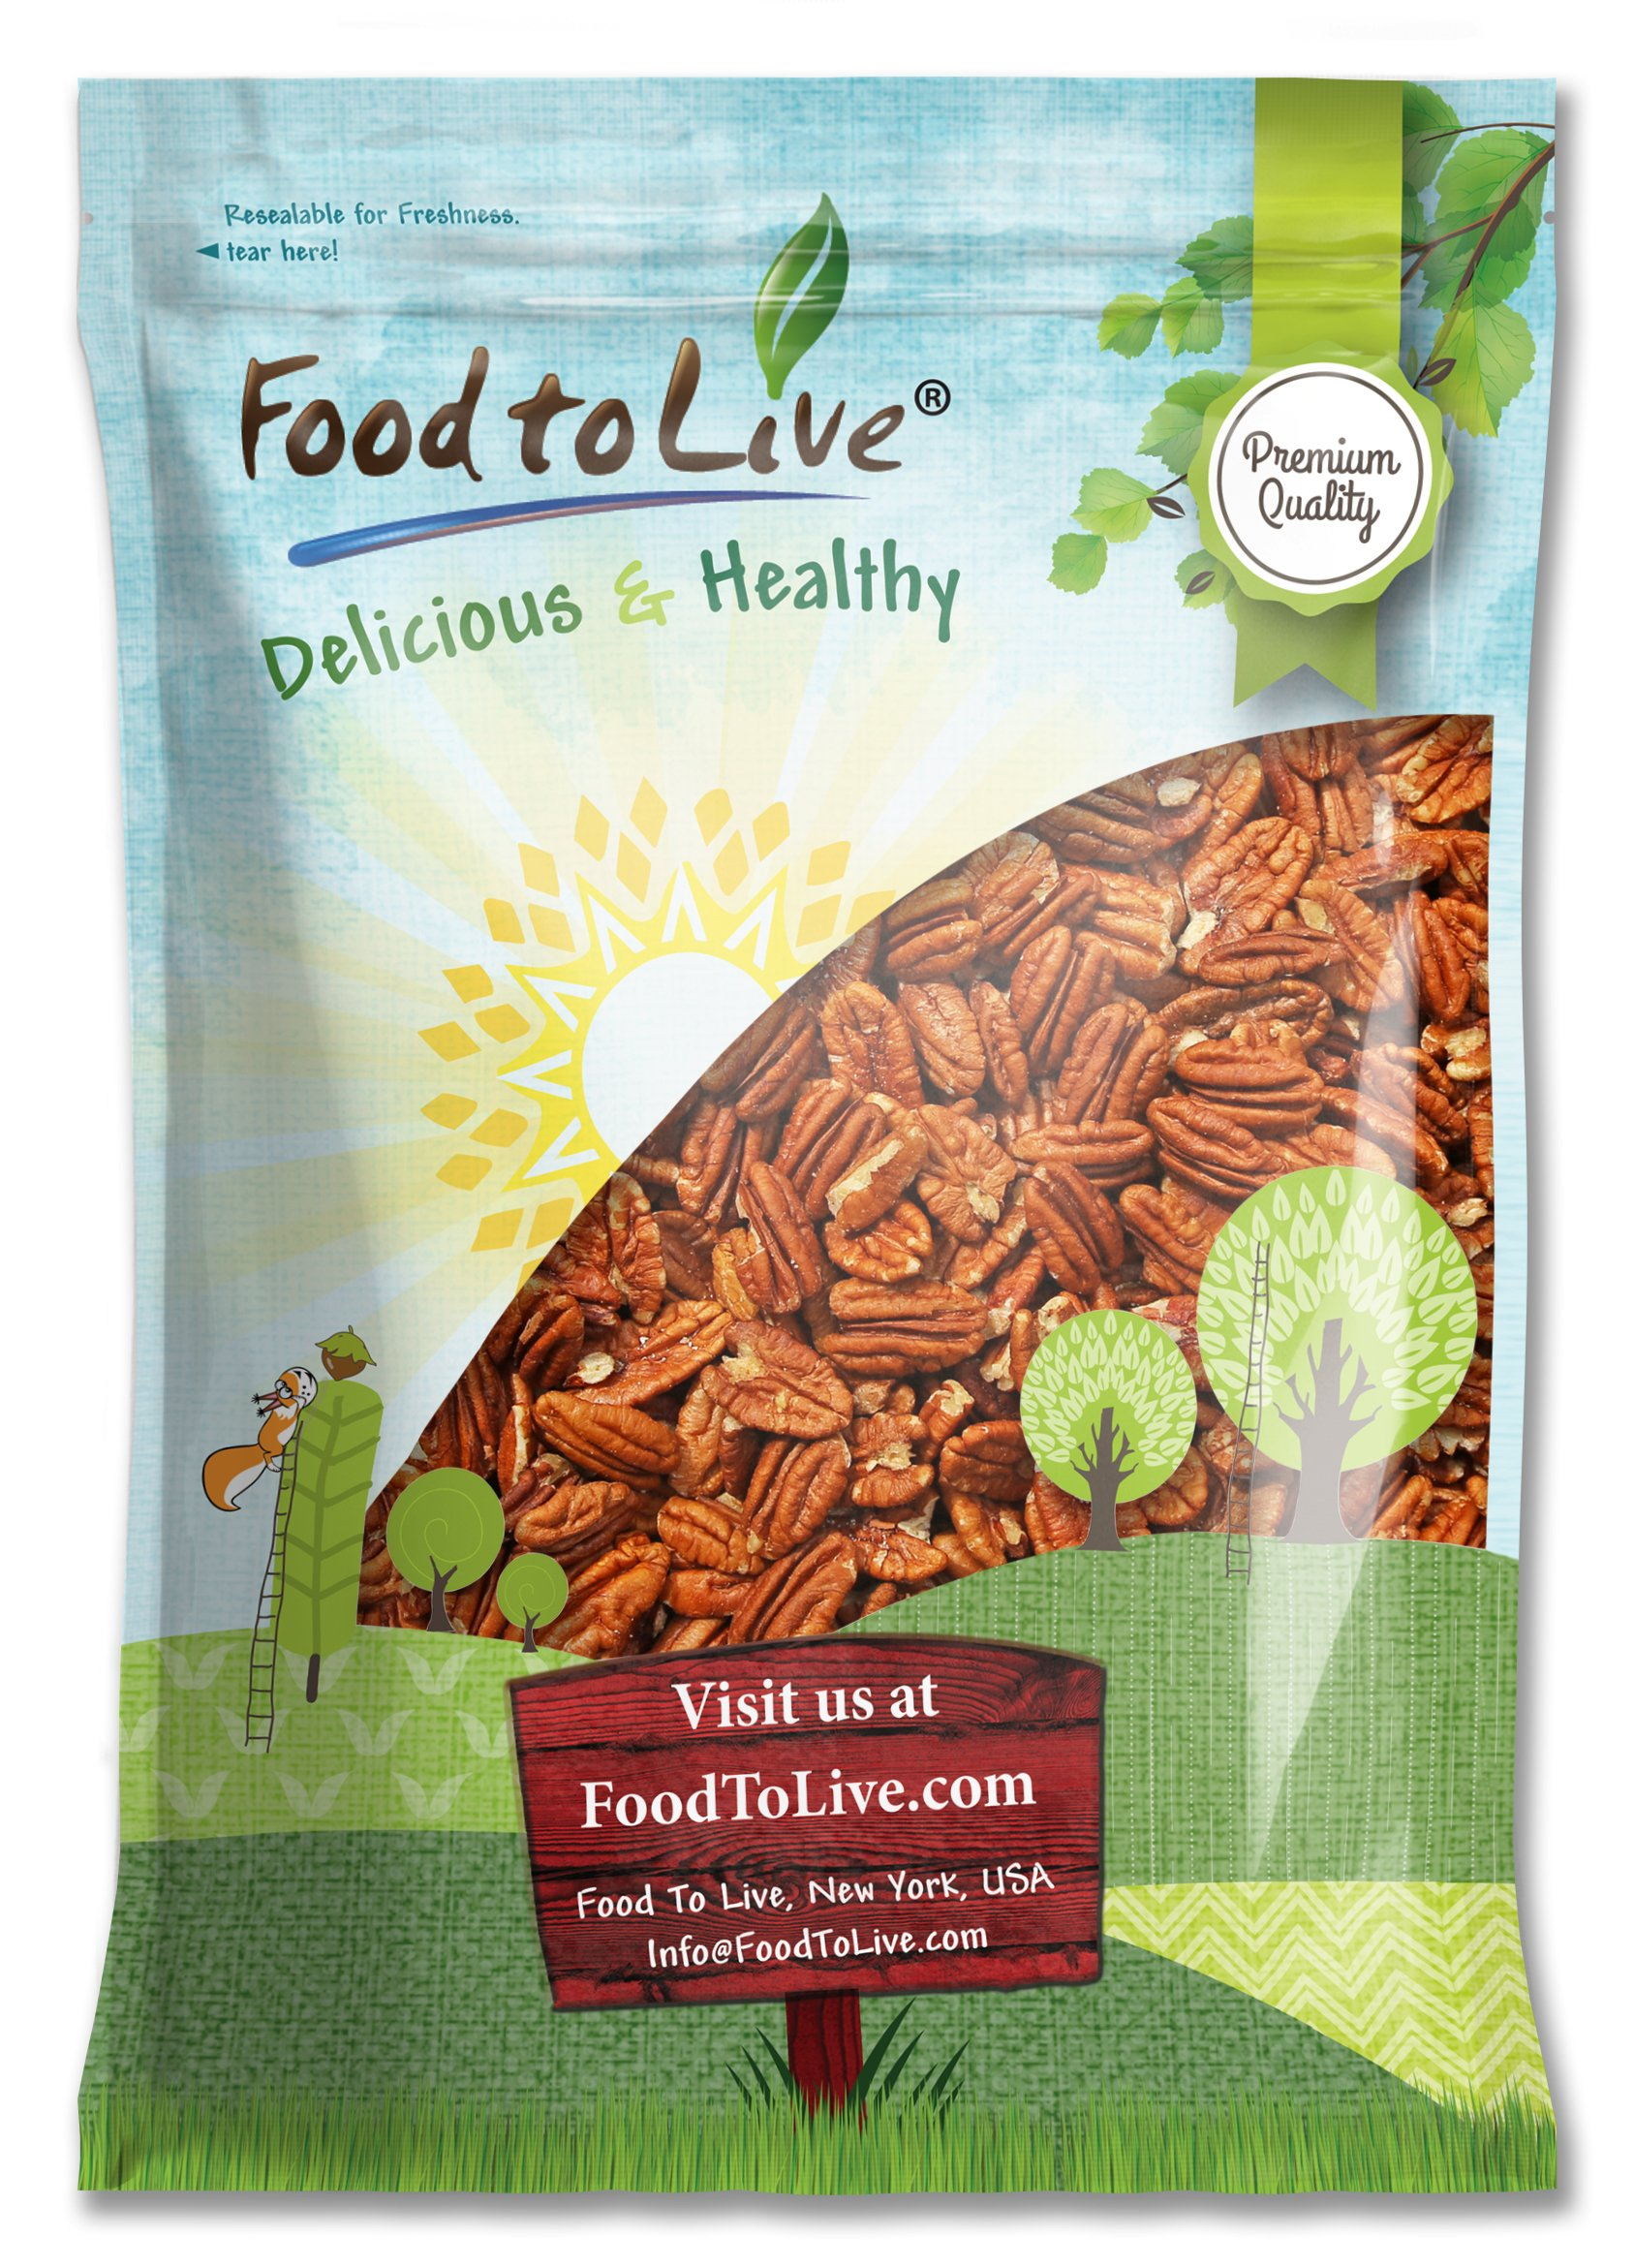 Pecans, 6 Pounds - Raw, No Shell, Kosher by Food to Live